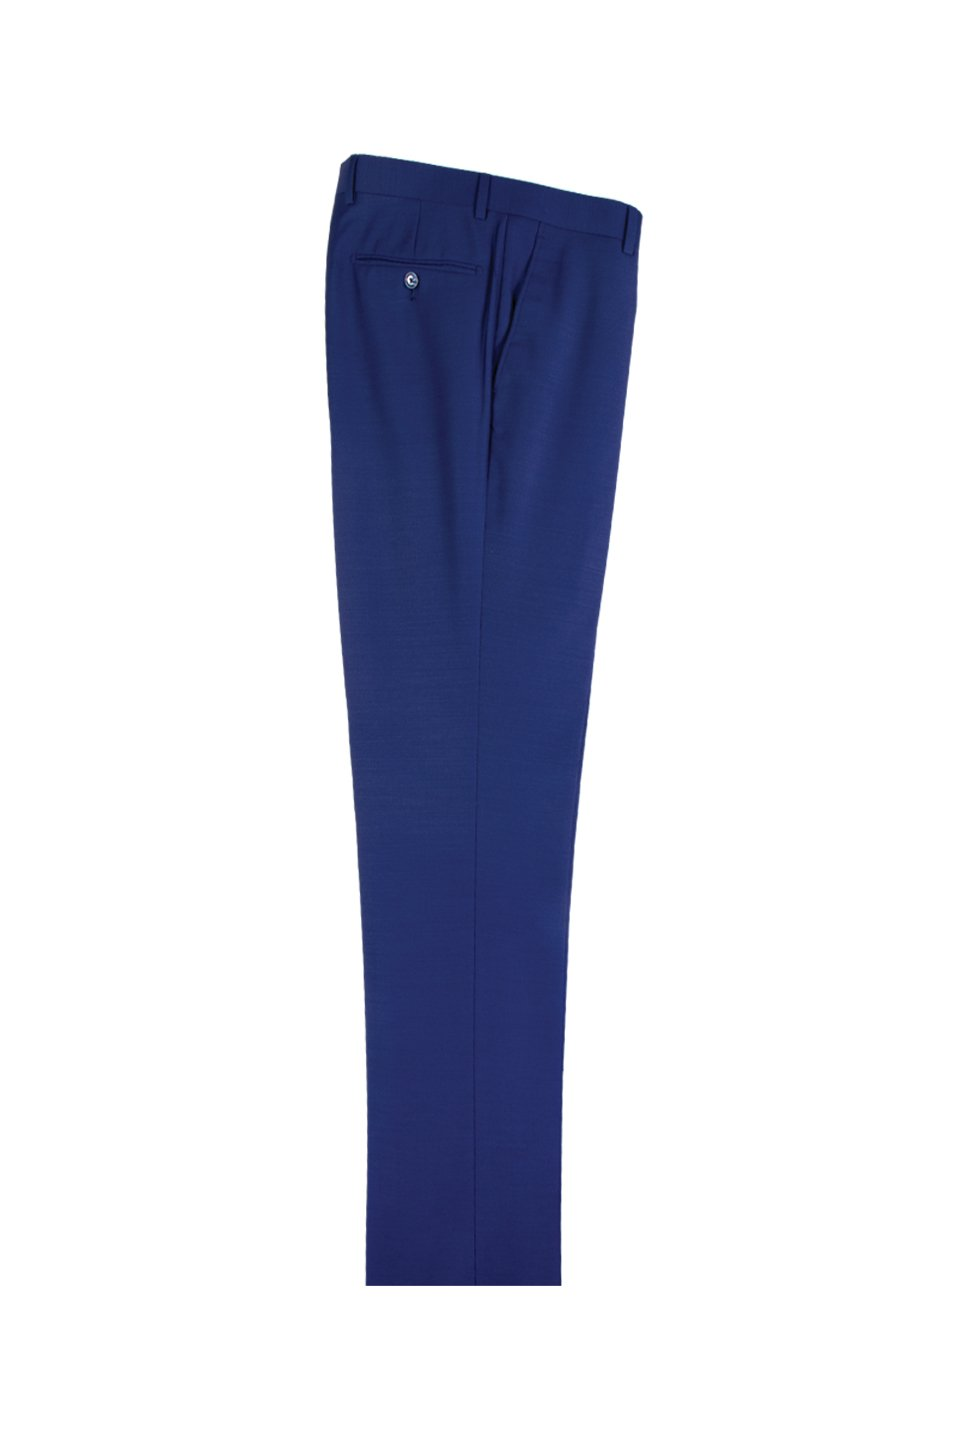 Tiglio French Blue Solid Flat Front Slim Fit Dress Pants